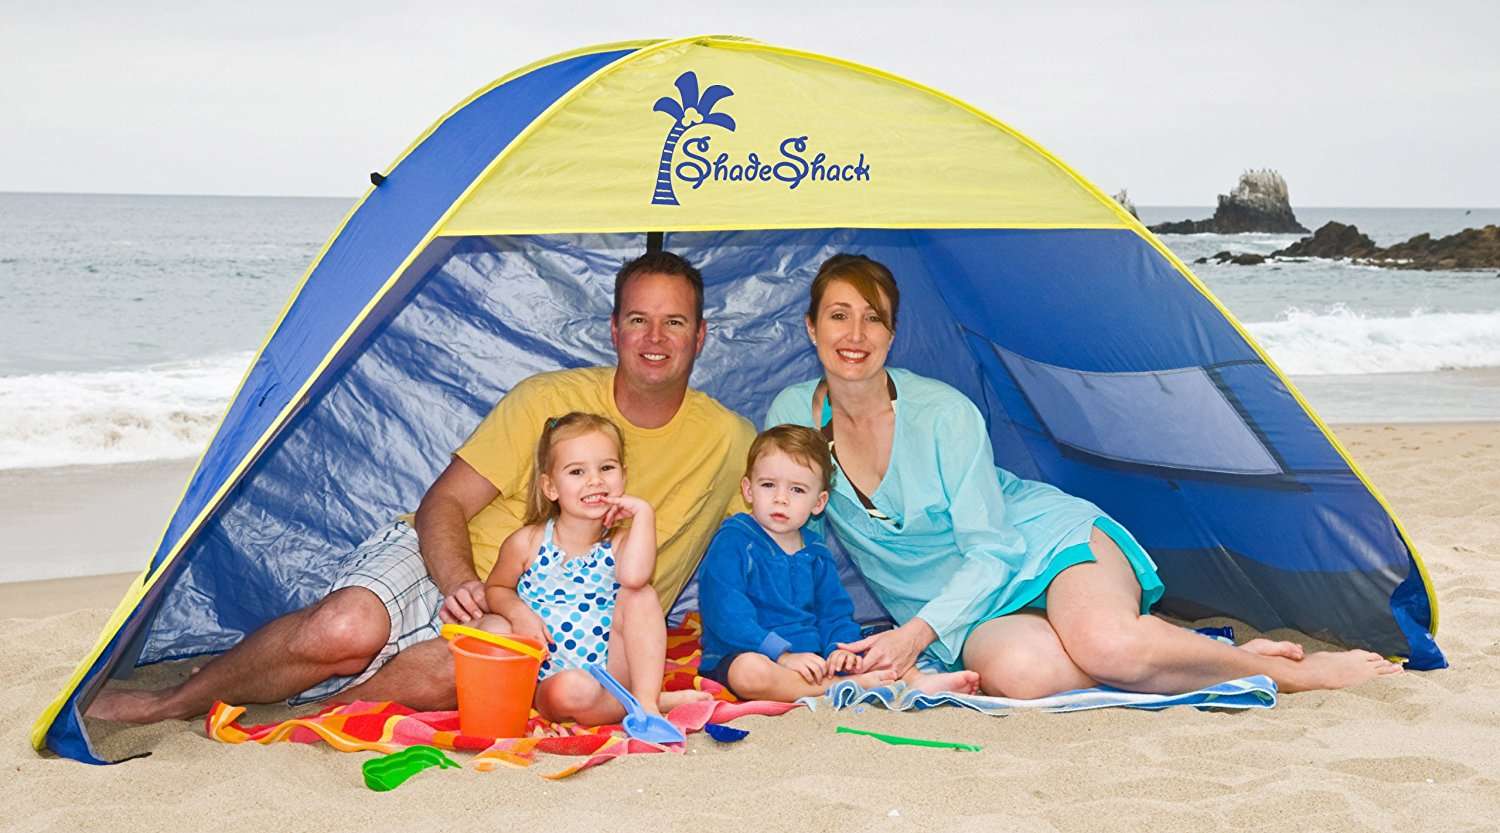 Best Beach Shade Tent  sc 1 st  OLP & Do You Need the Best Beach Shade Tent or Beach Shade Umbrellas For ...